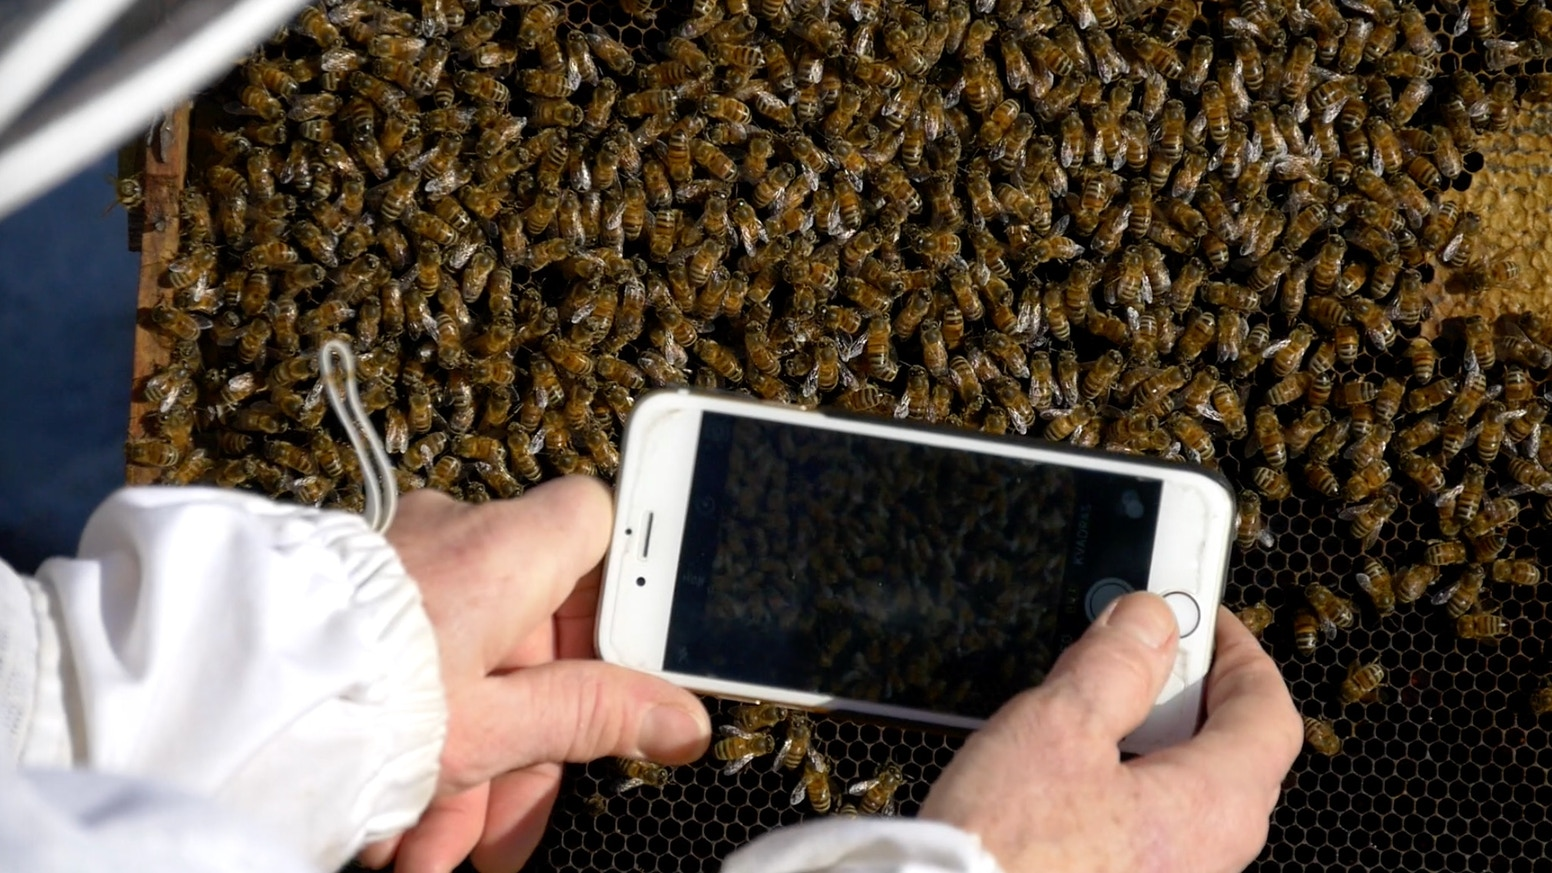 Varroa mites kills bees! BeeScanning reveals the parasite. Tells beekeeper to treat. Take picture with your phone, let the App analyze.